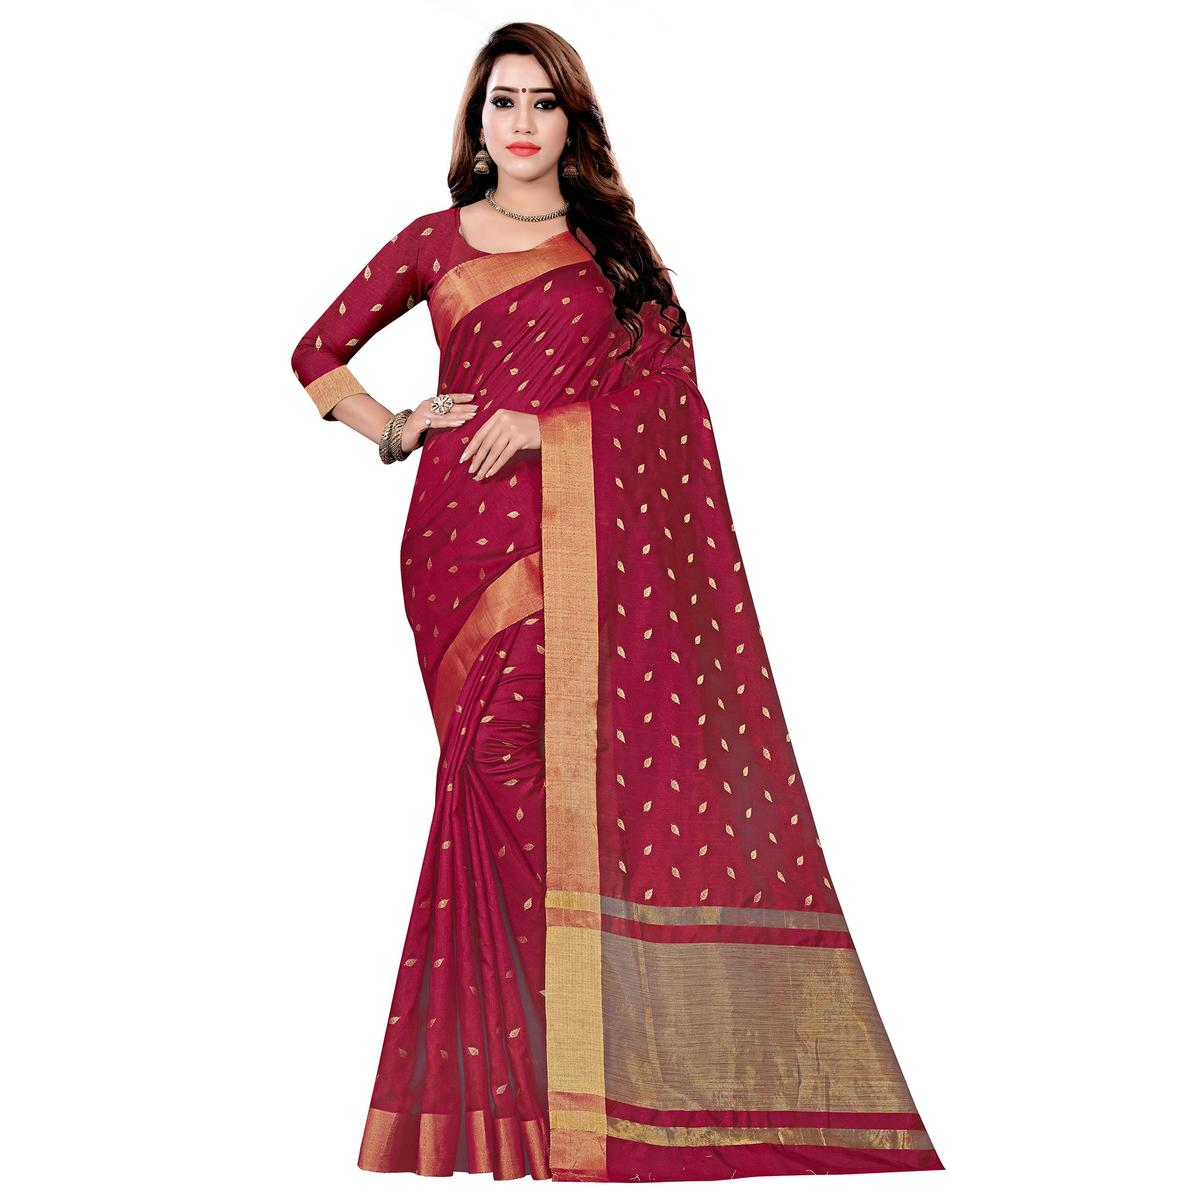 Blooming Dark Magenta Pink Colored Festive Wear Woven Art Silk Saree